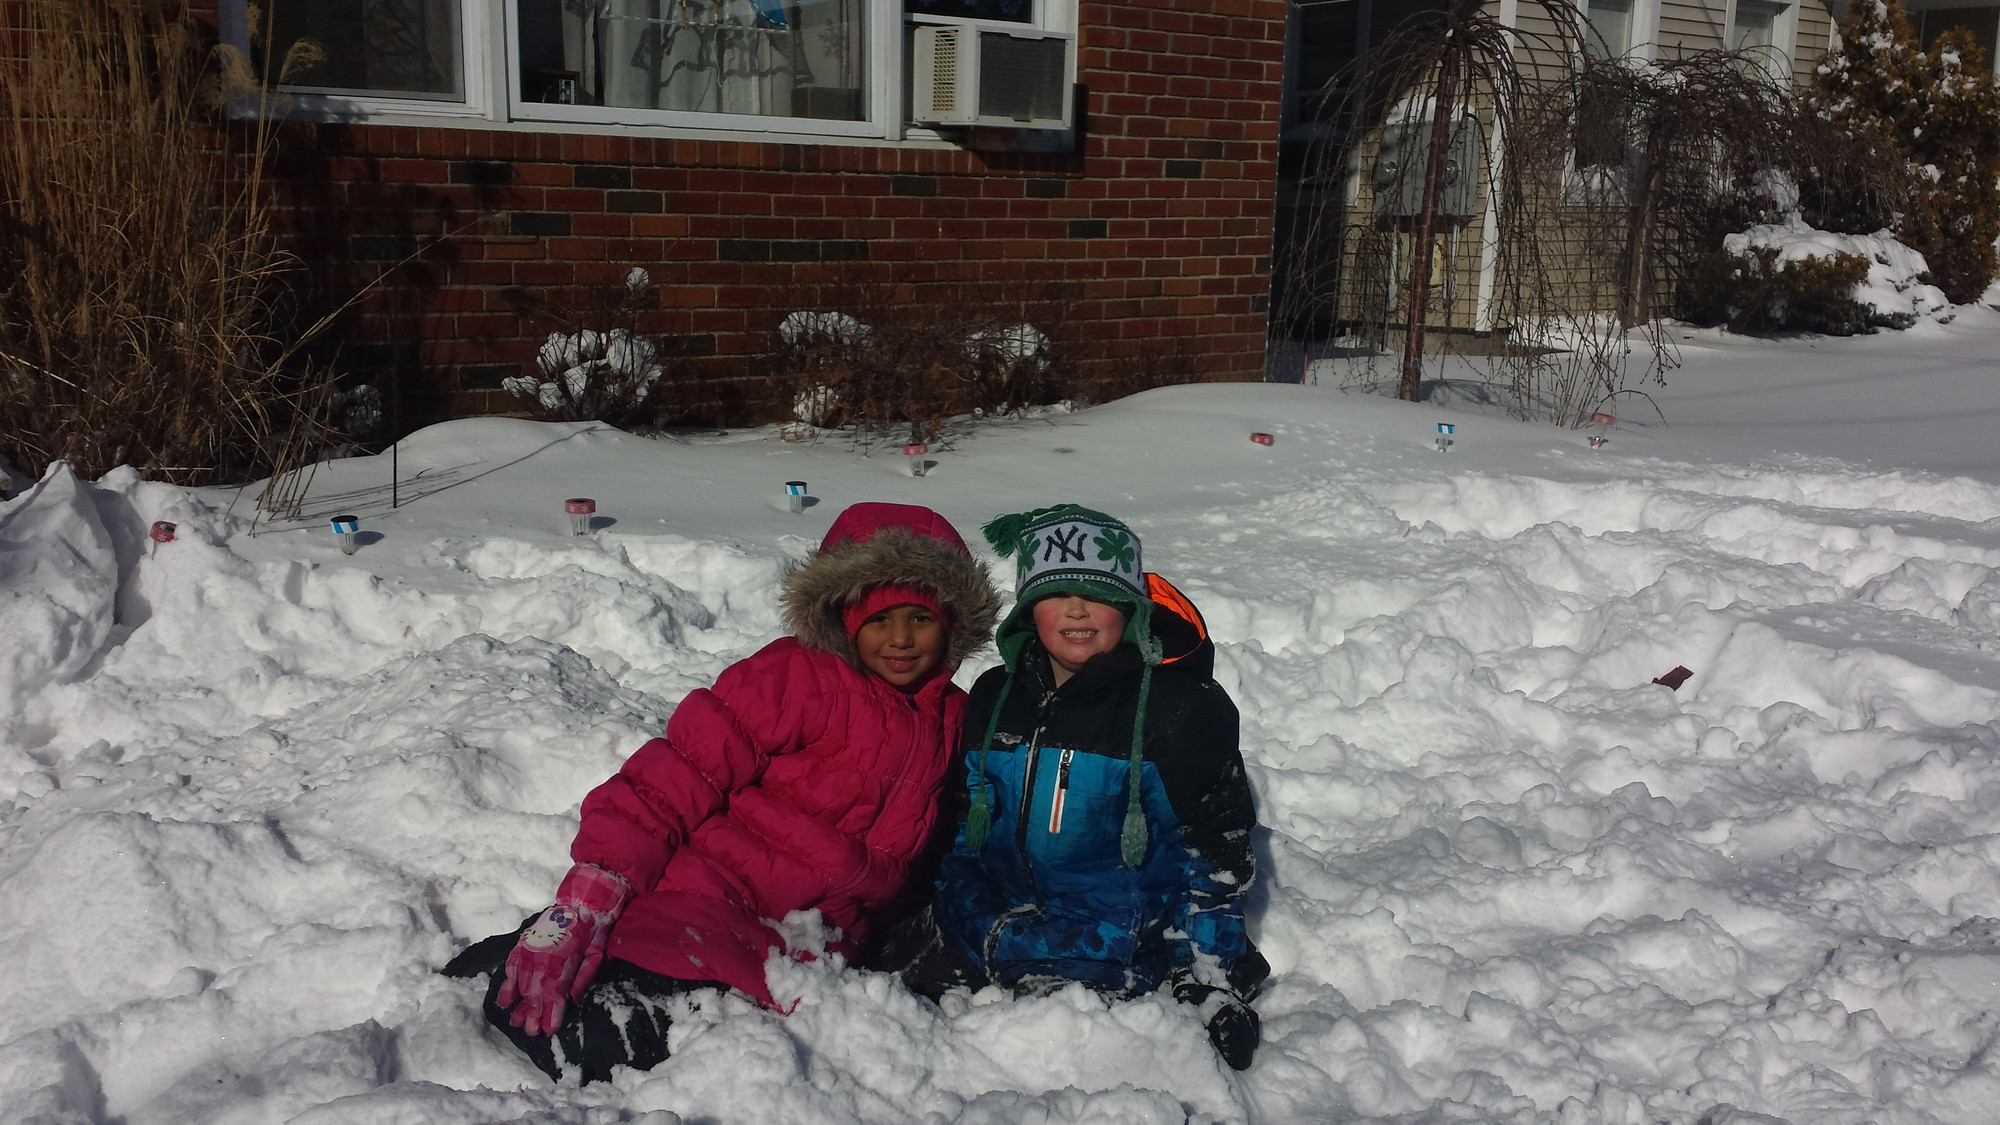 Bella Rush and Danny Casey enjoyed the snow outside of a Fifth Street home in Valley Stream on Wednesday.